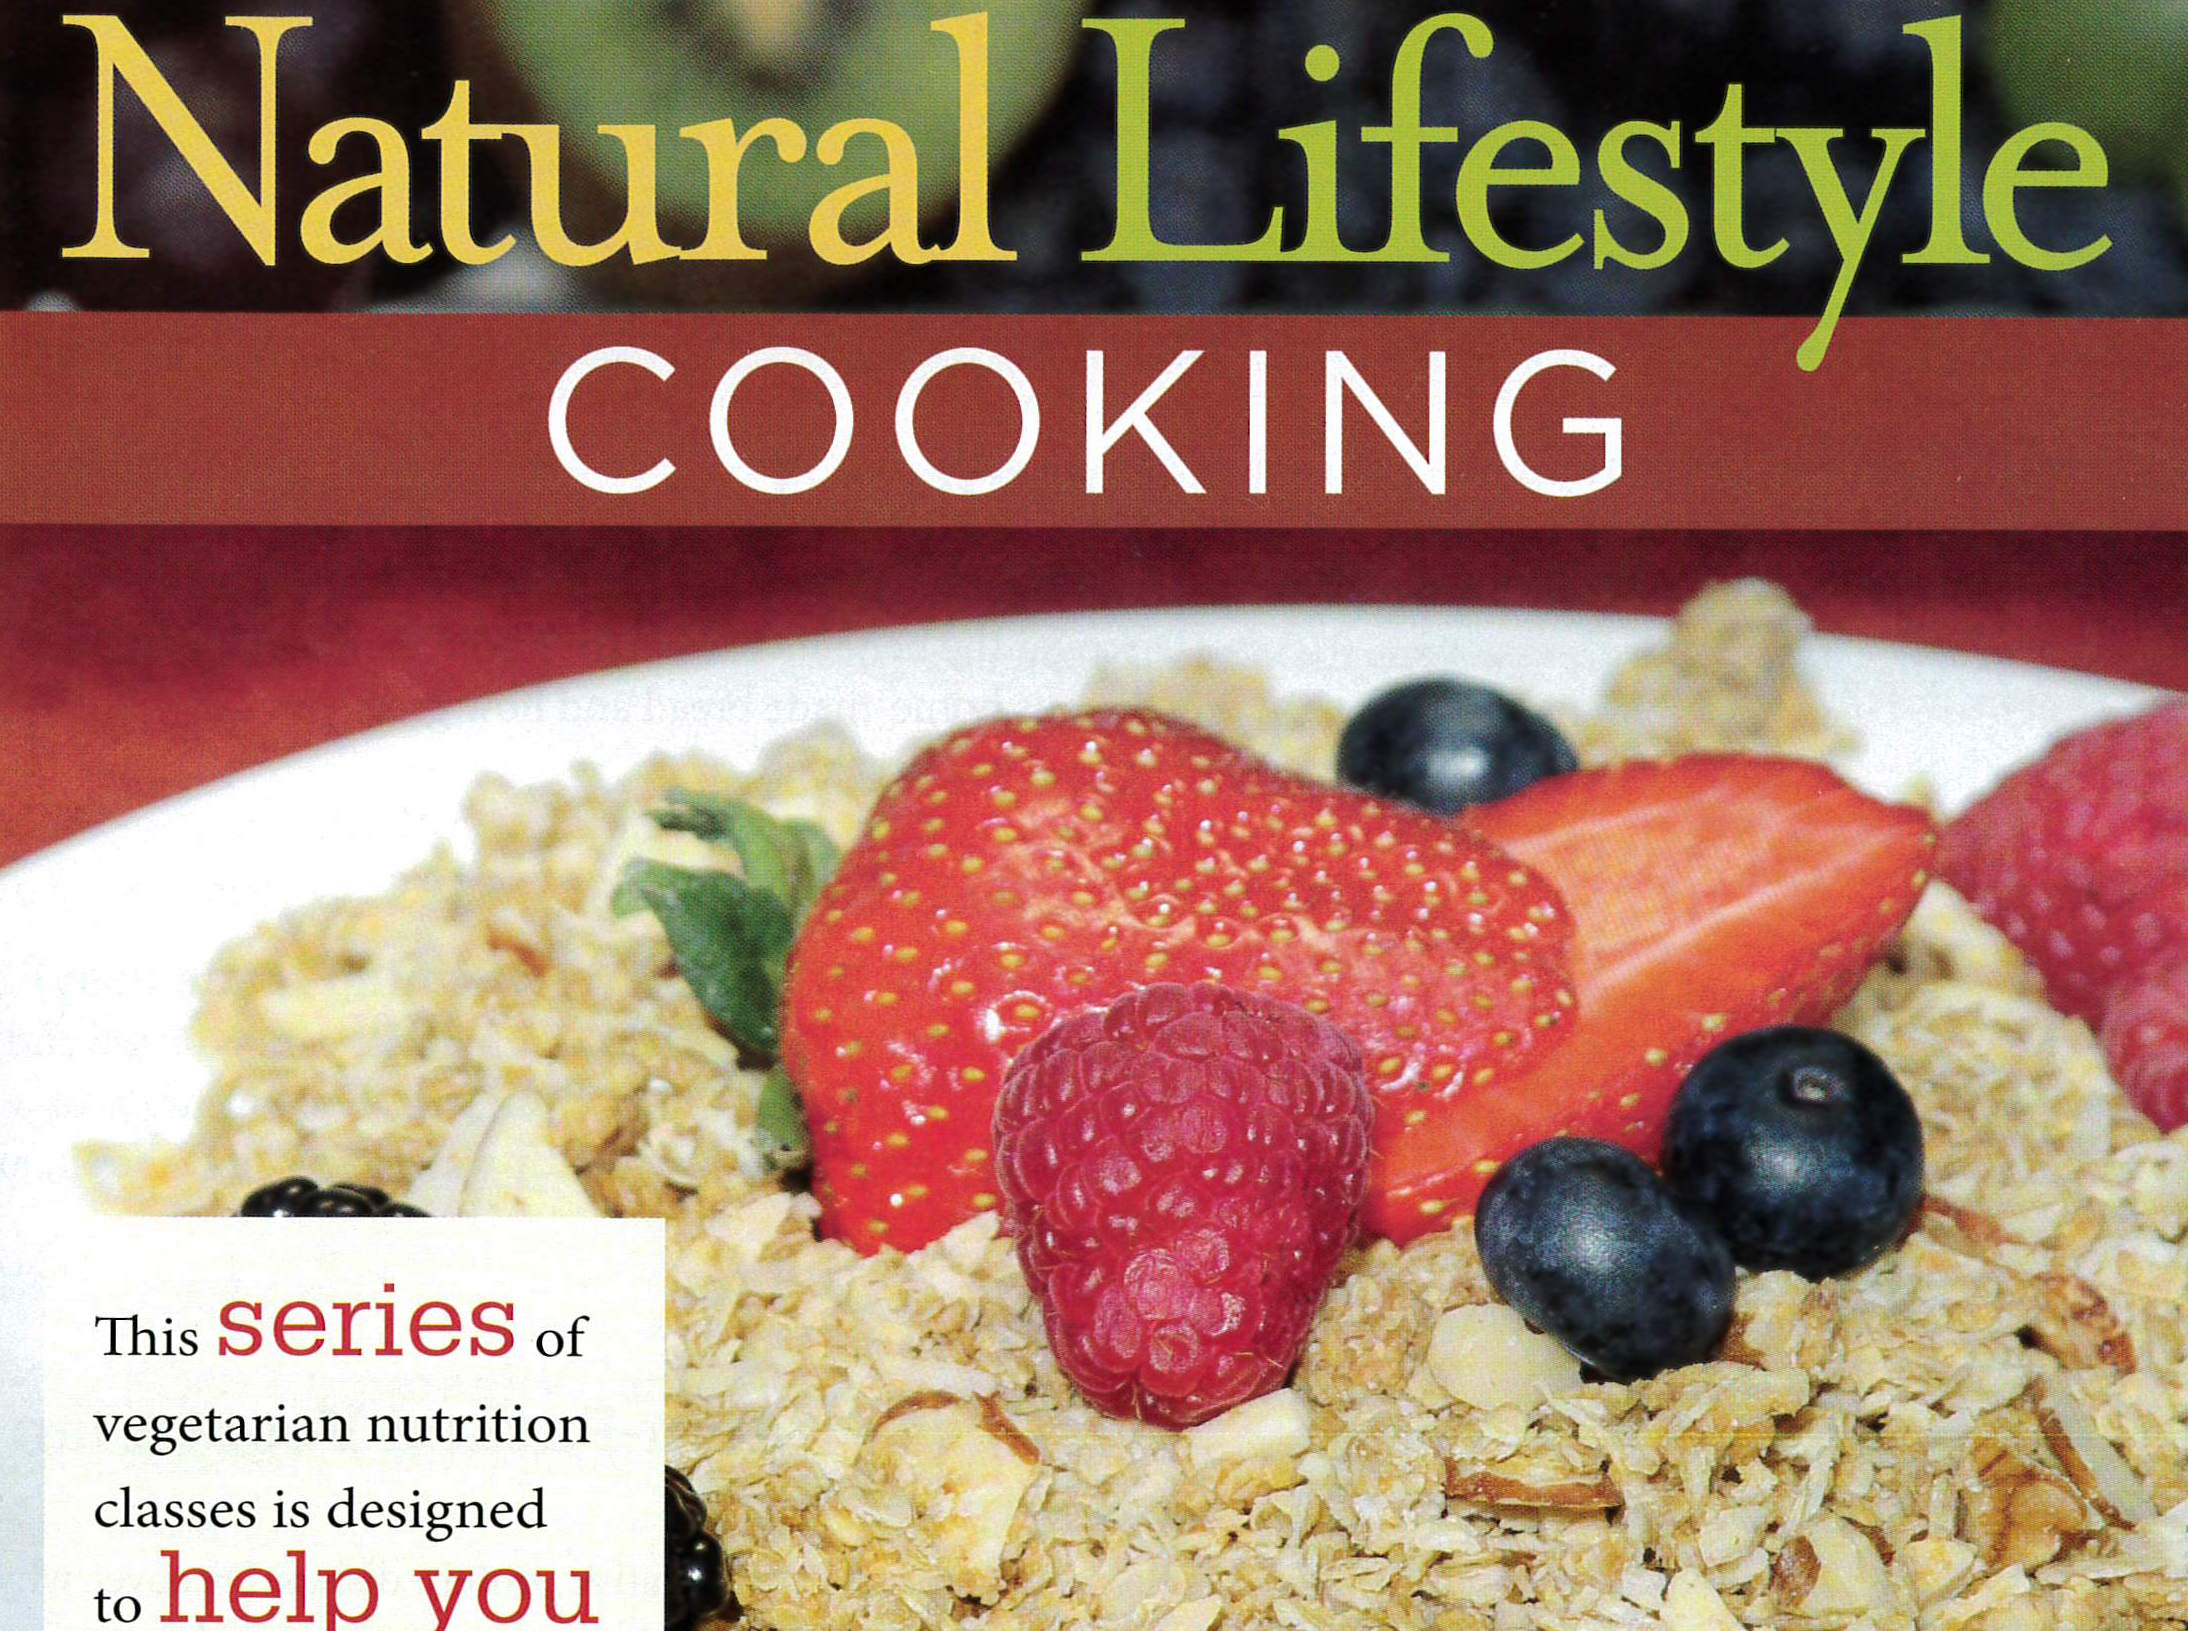 Natural Lifestyle Cooking